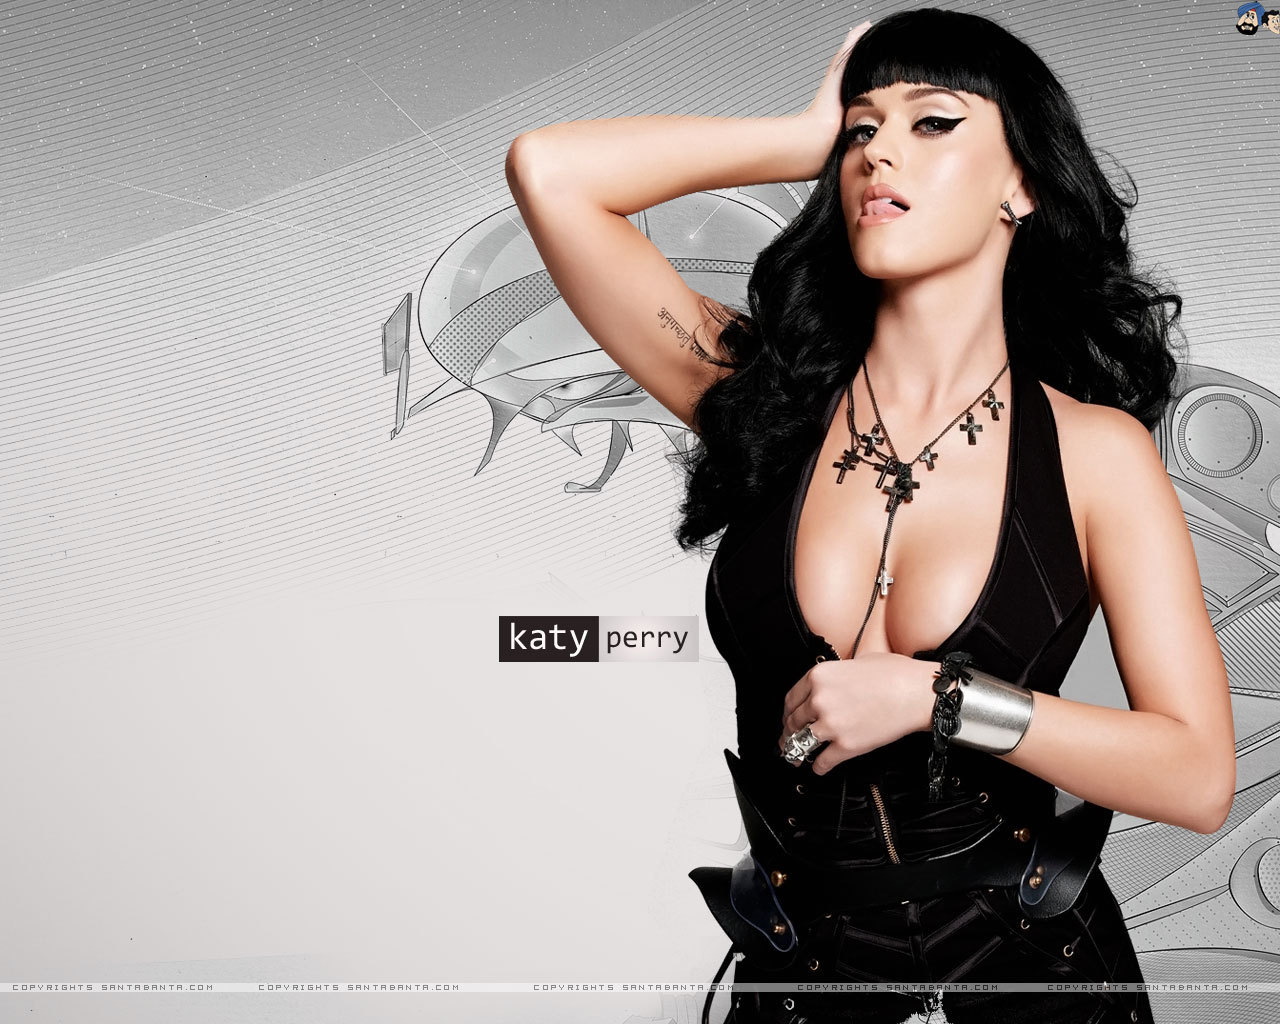 katy katy perry wallpaper 15445051 fanpop